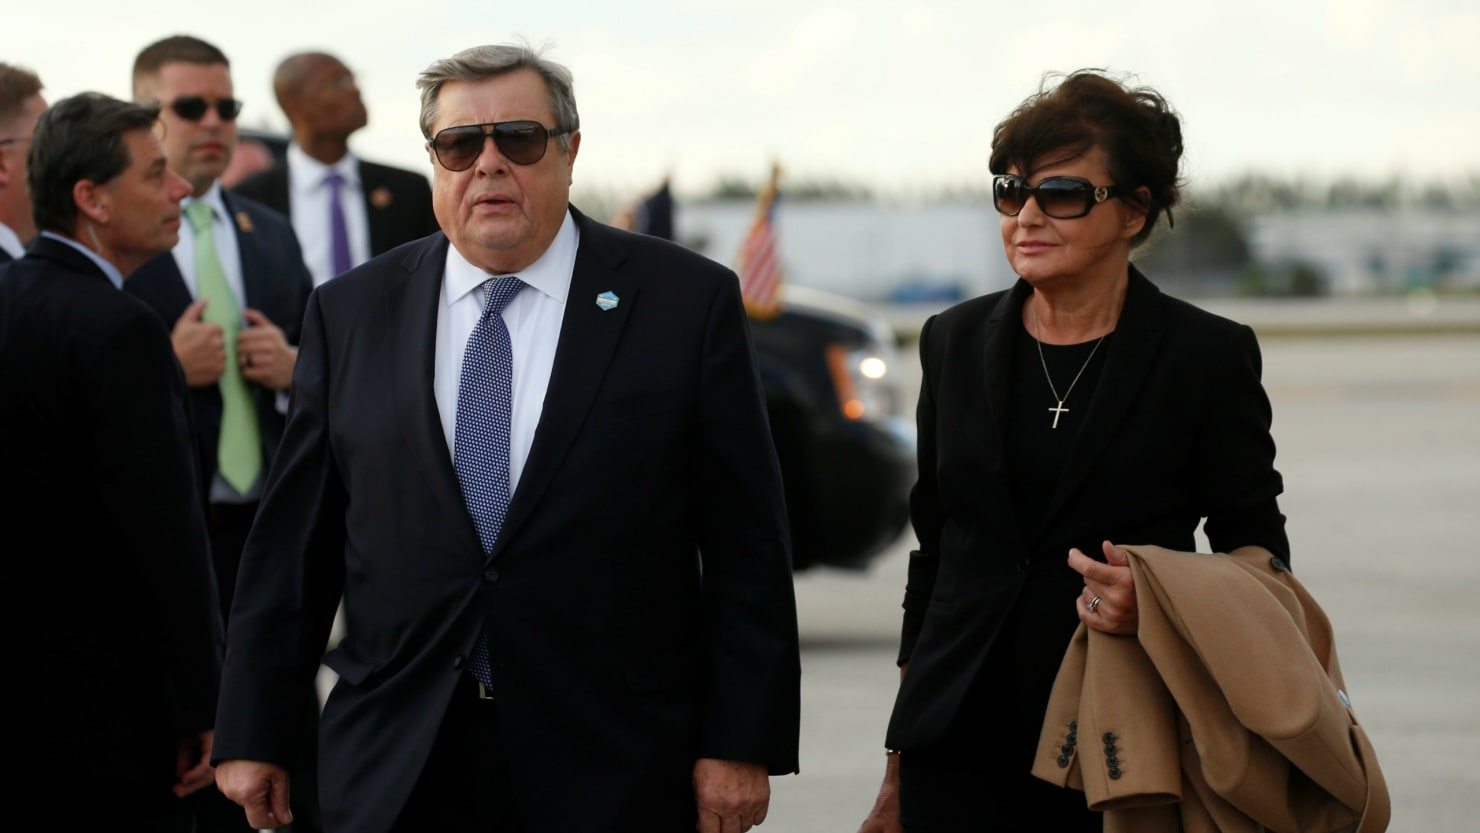 Report Melania Trumps Parents Likely Used Chain